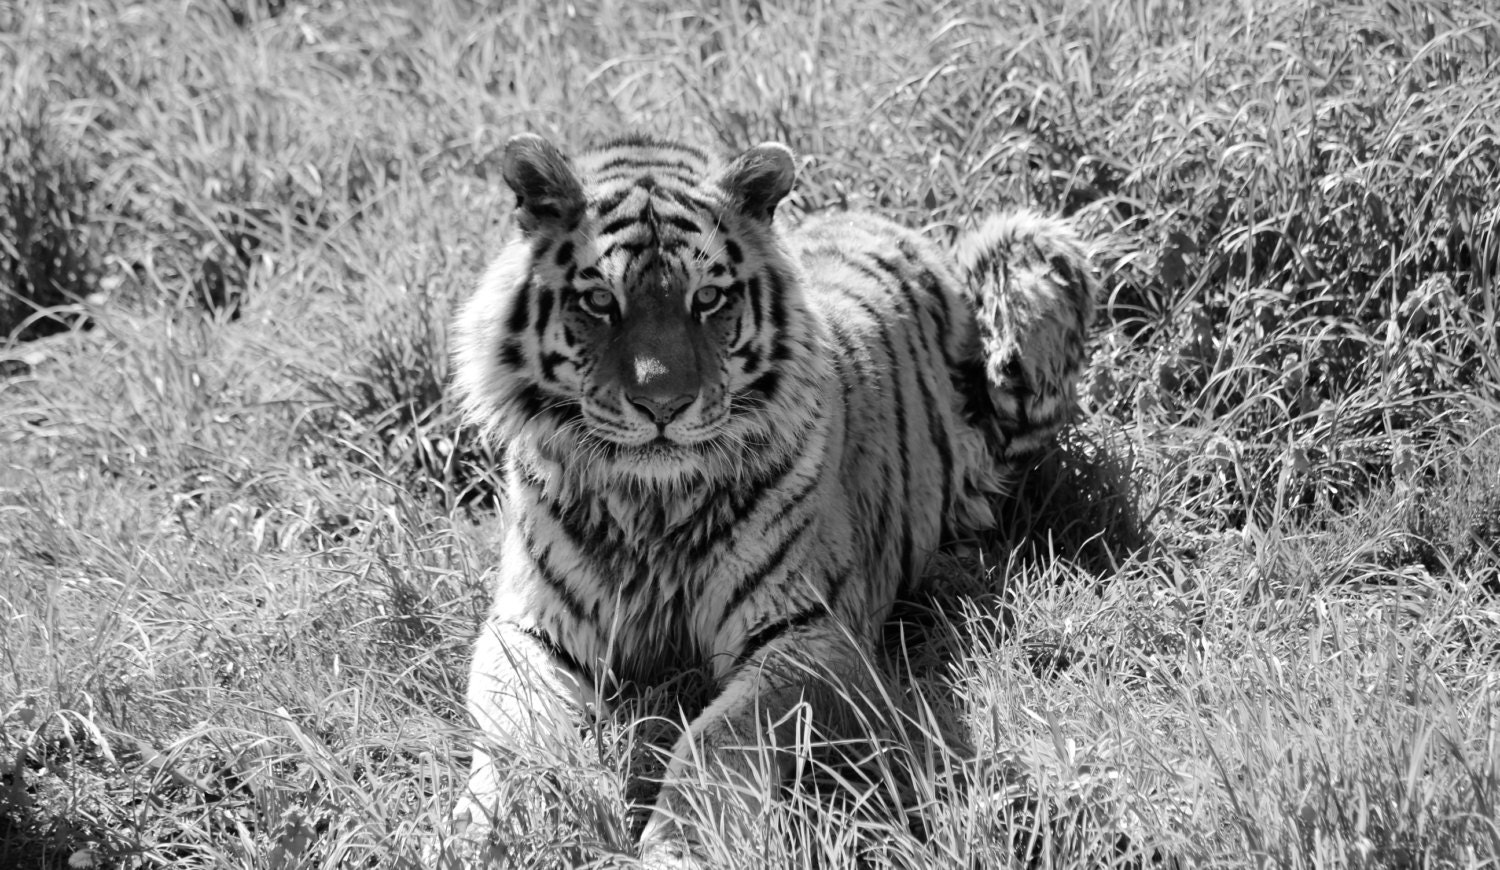 tiger black and white photography wildlife photography | etsy